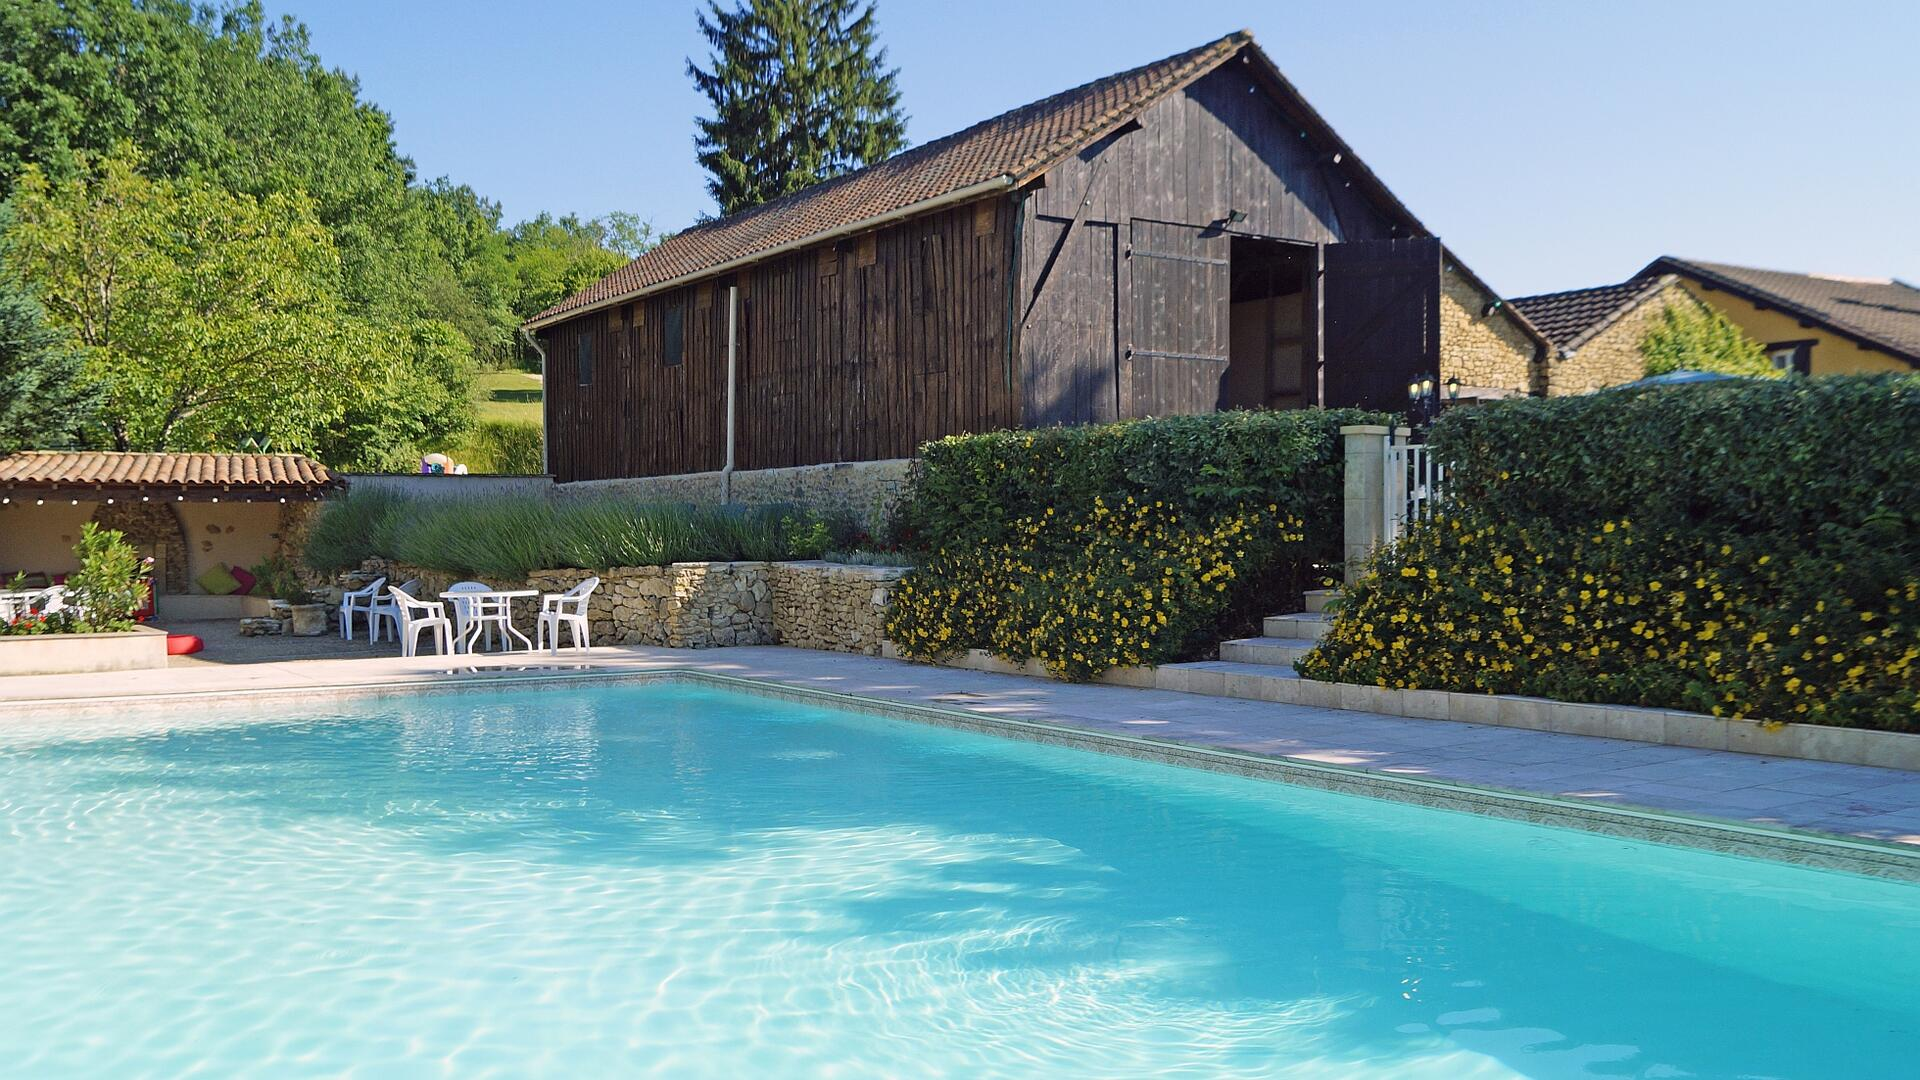 2 Bedroom Cottage/shared facilities in Aquitaine, France